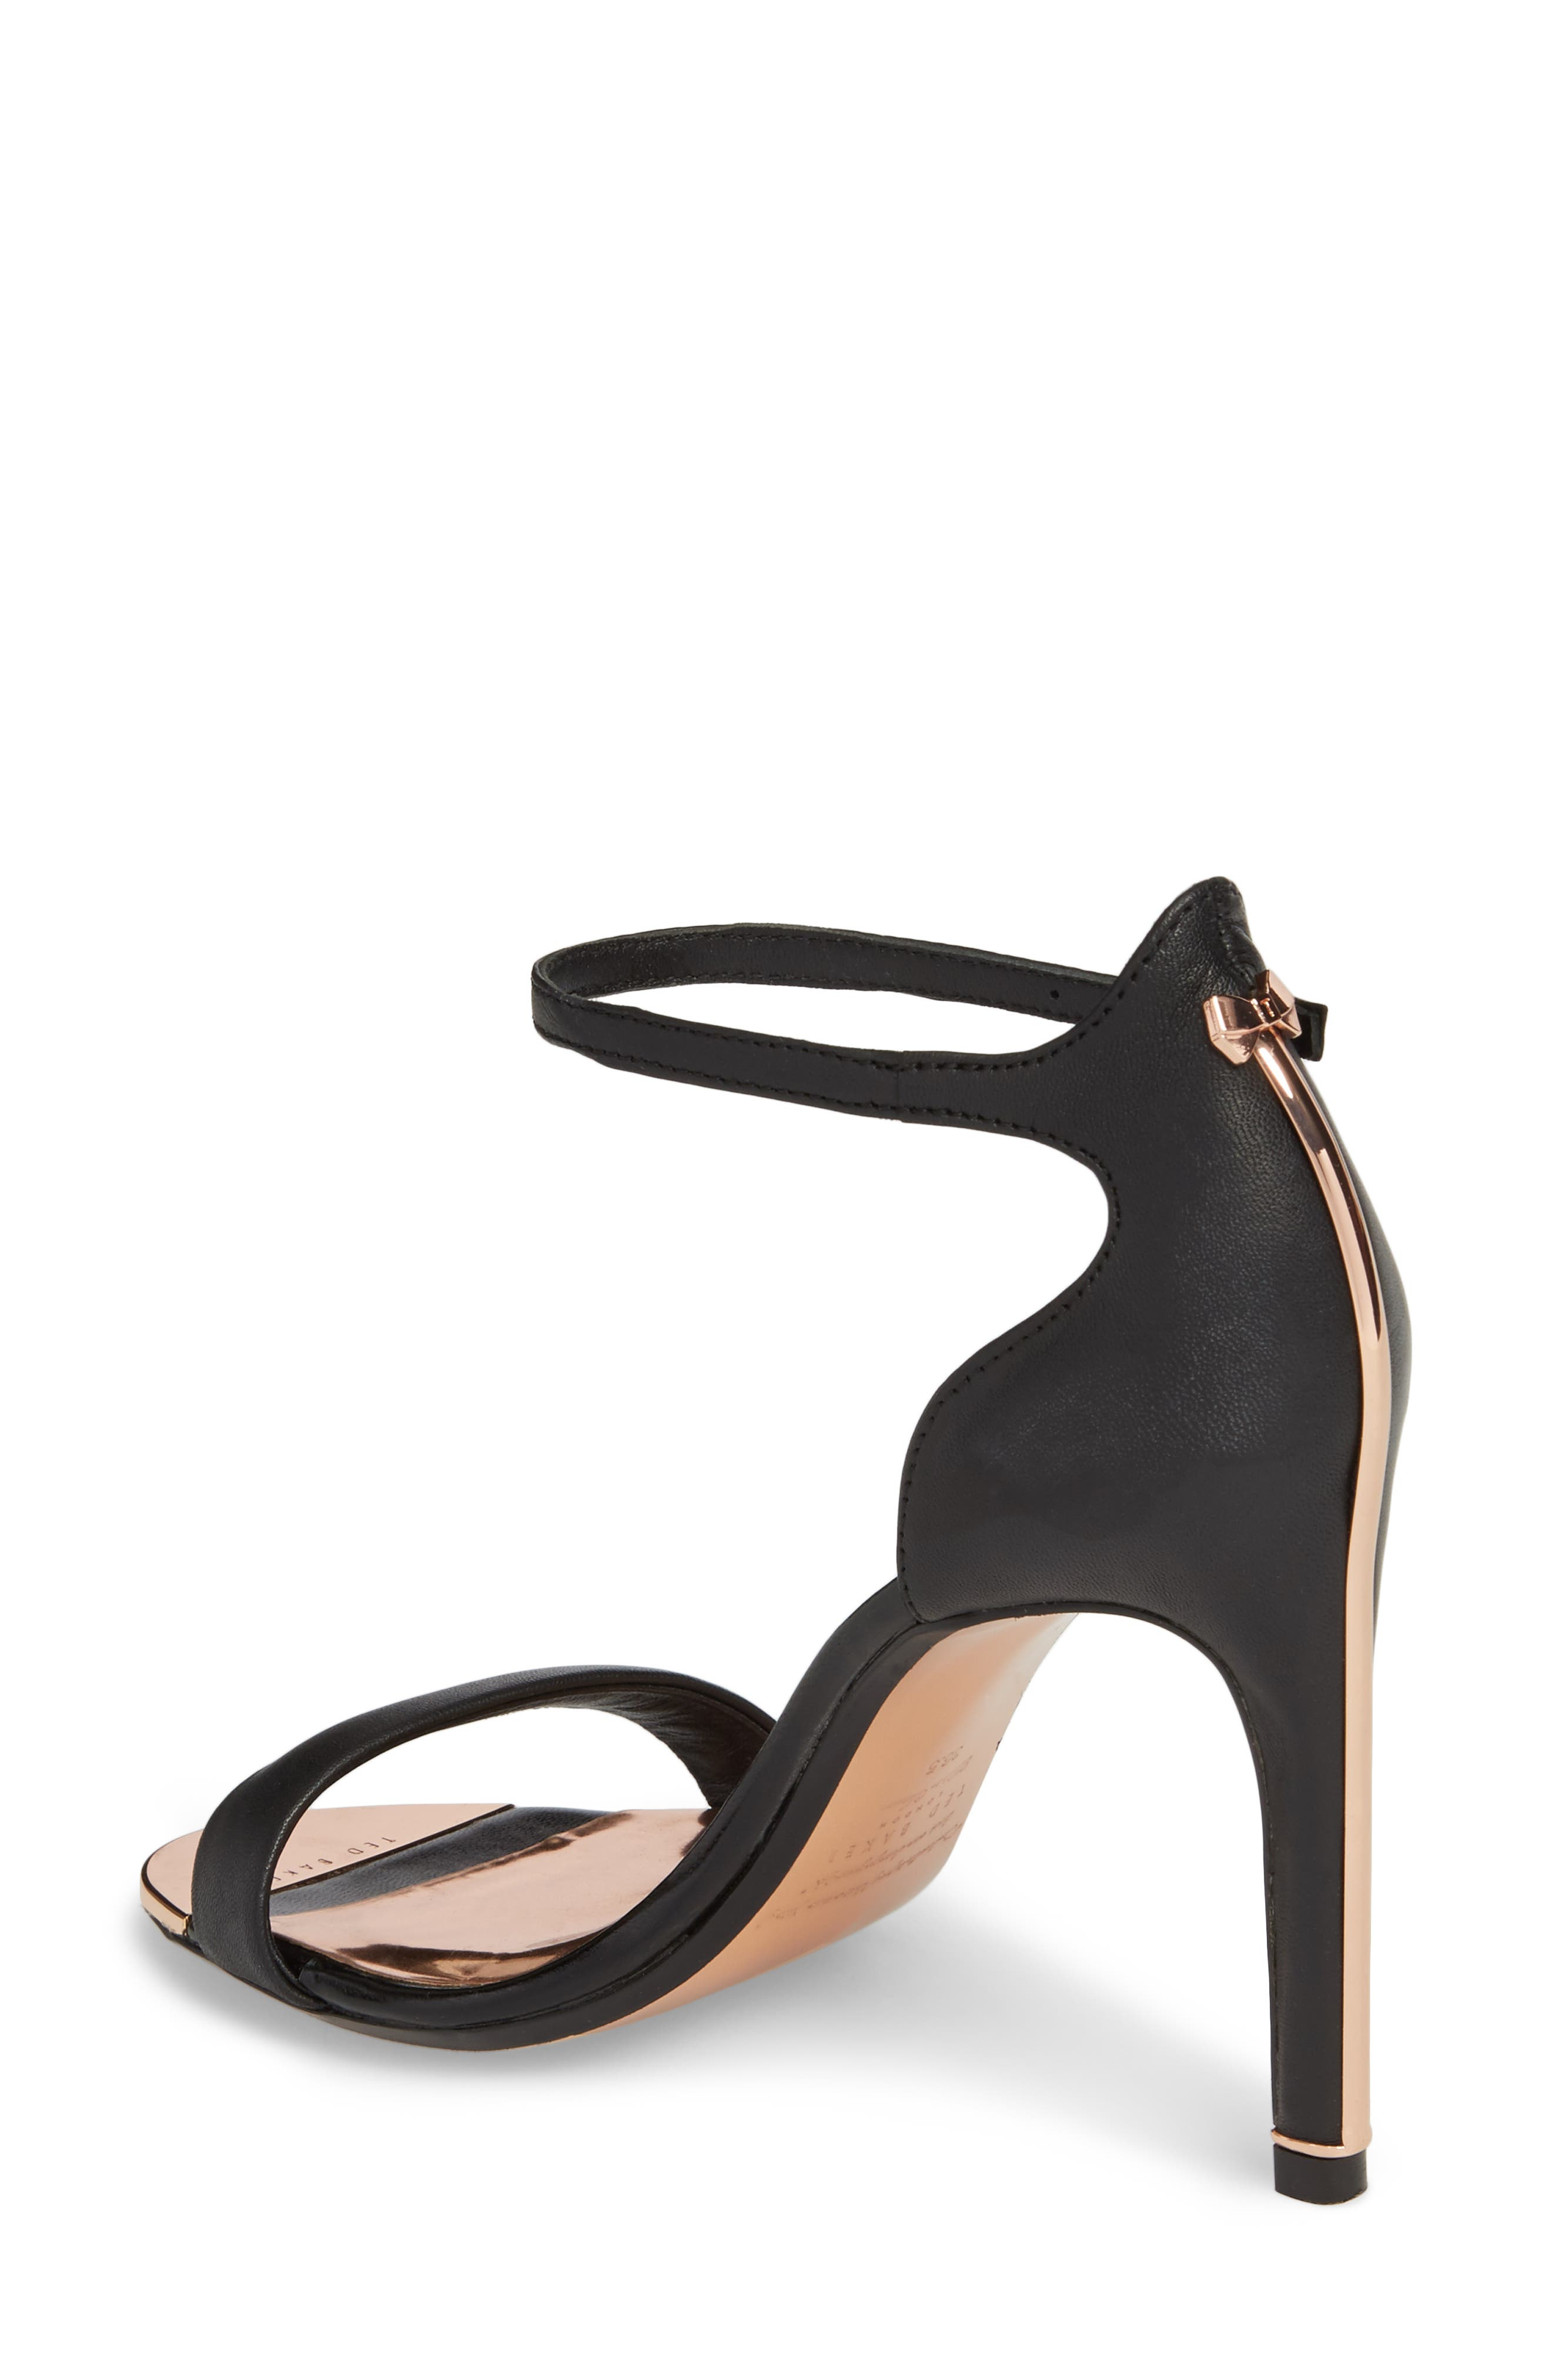 Sharlot Ankle Strap Sandal,                             Alternate thumbnail 2, color,                             001